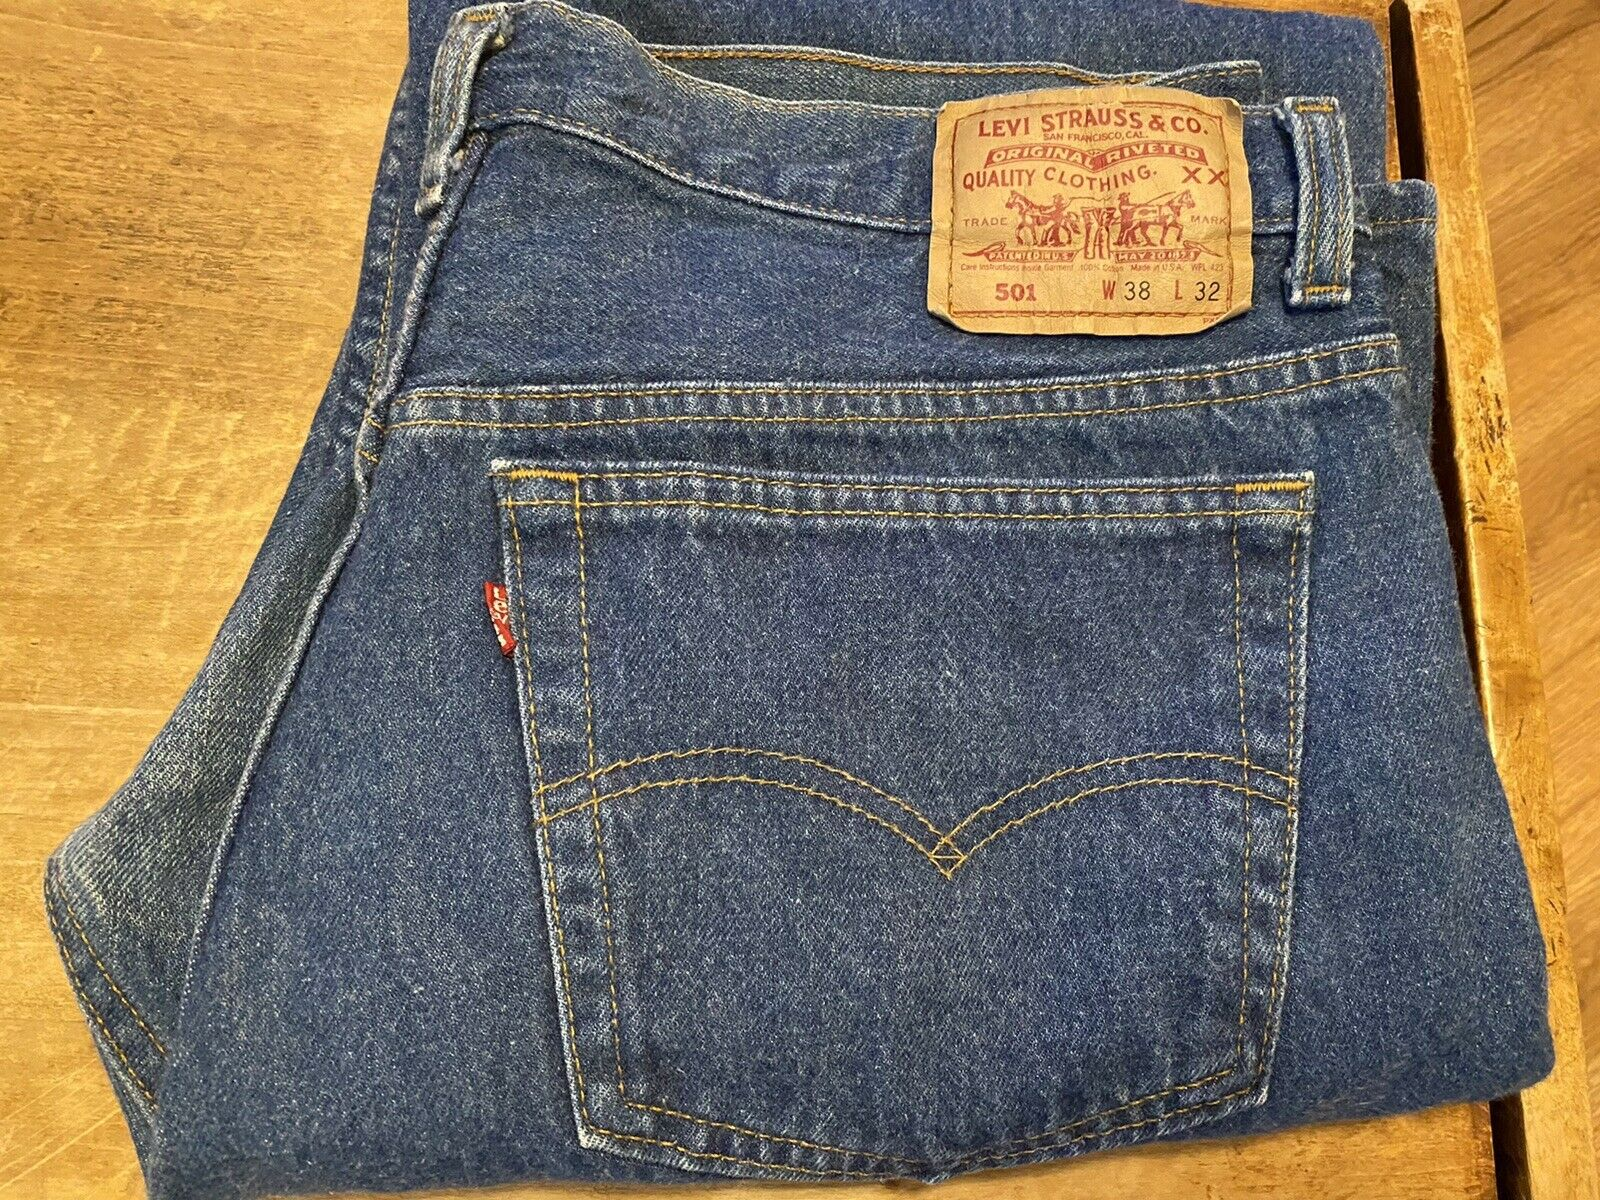 vintage levis 501 made in usa 38x32 never worn - image 2